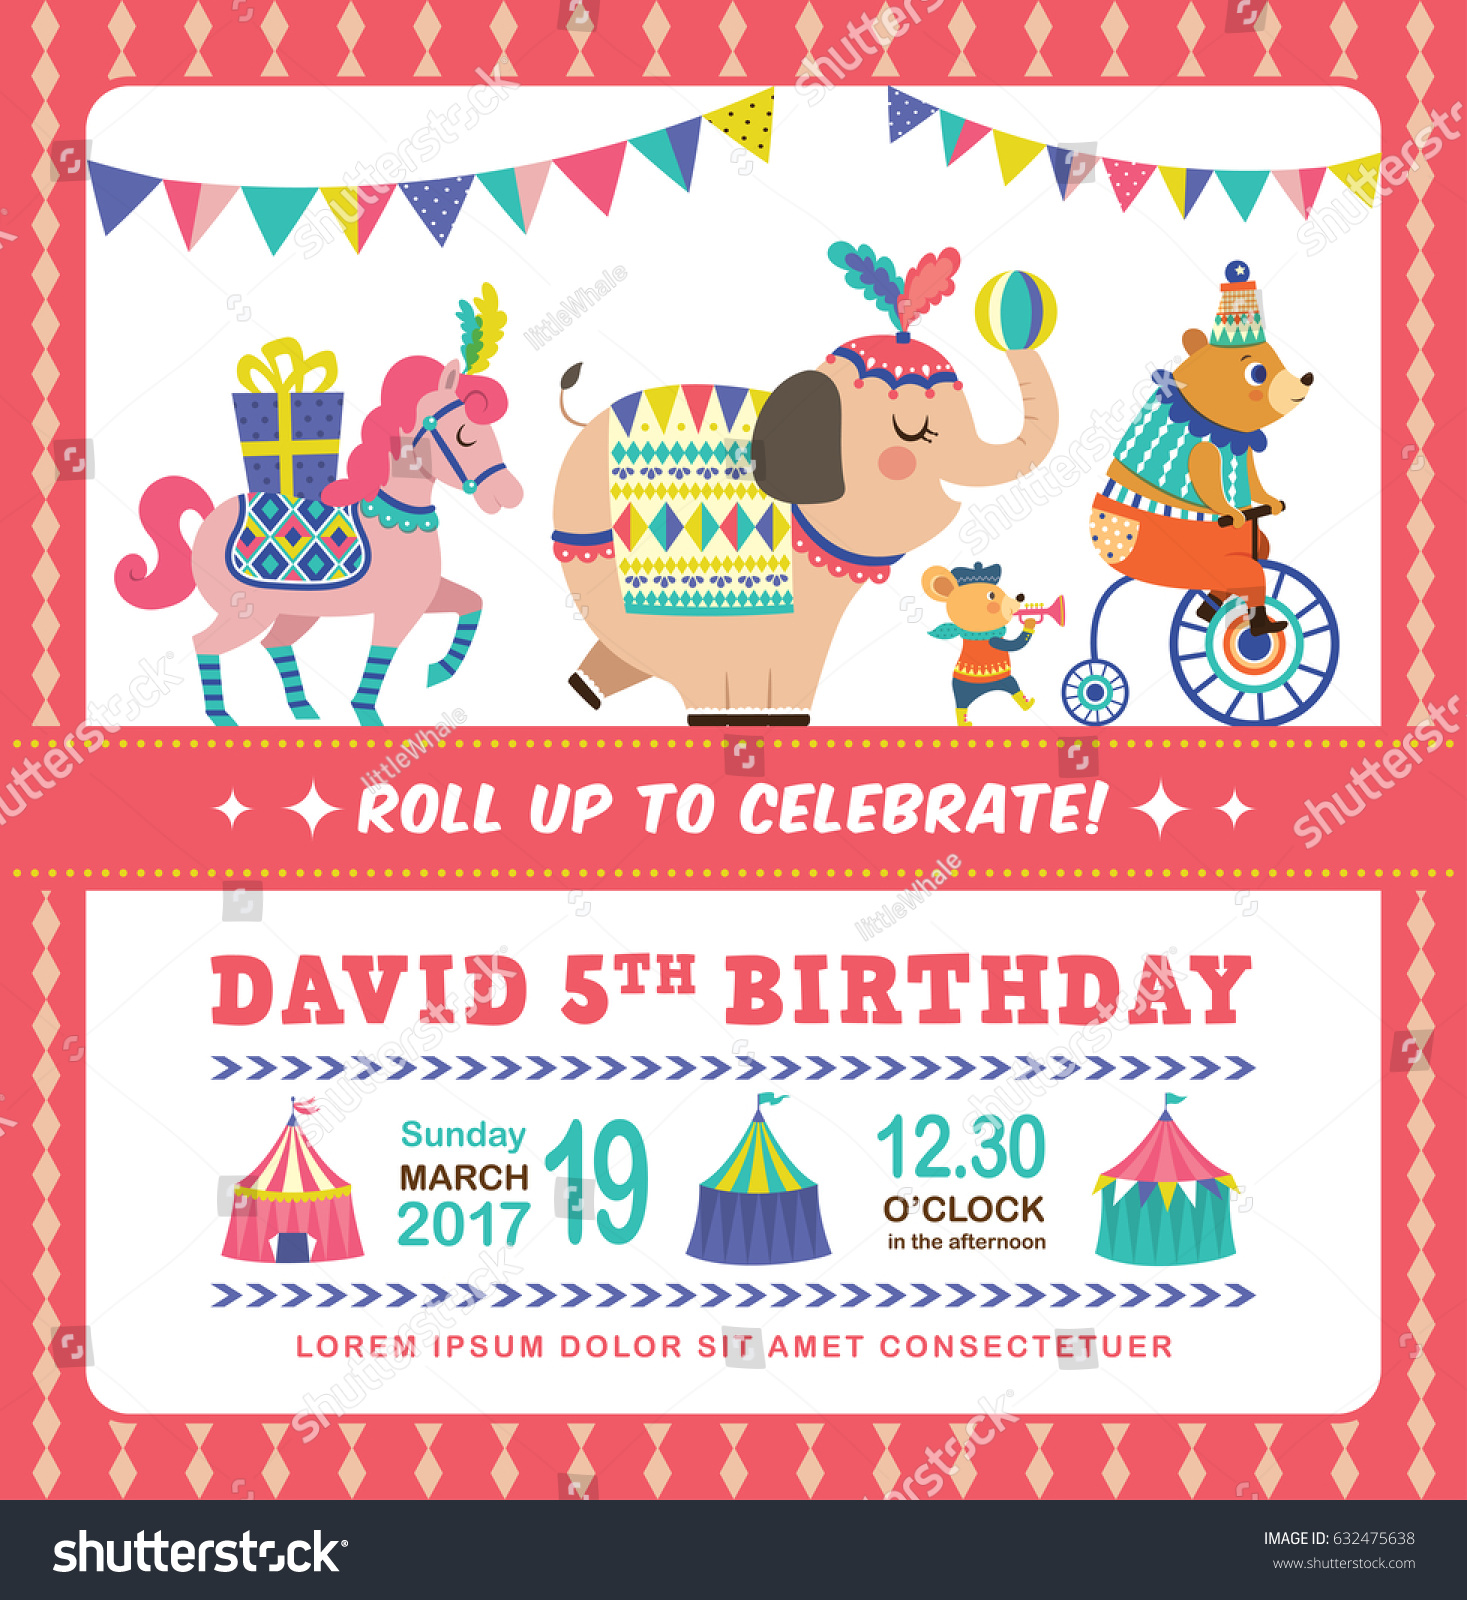 Birthday Party Invitation Cards For Kids Images Invitation – Birthday Party Invitation Cards